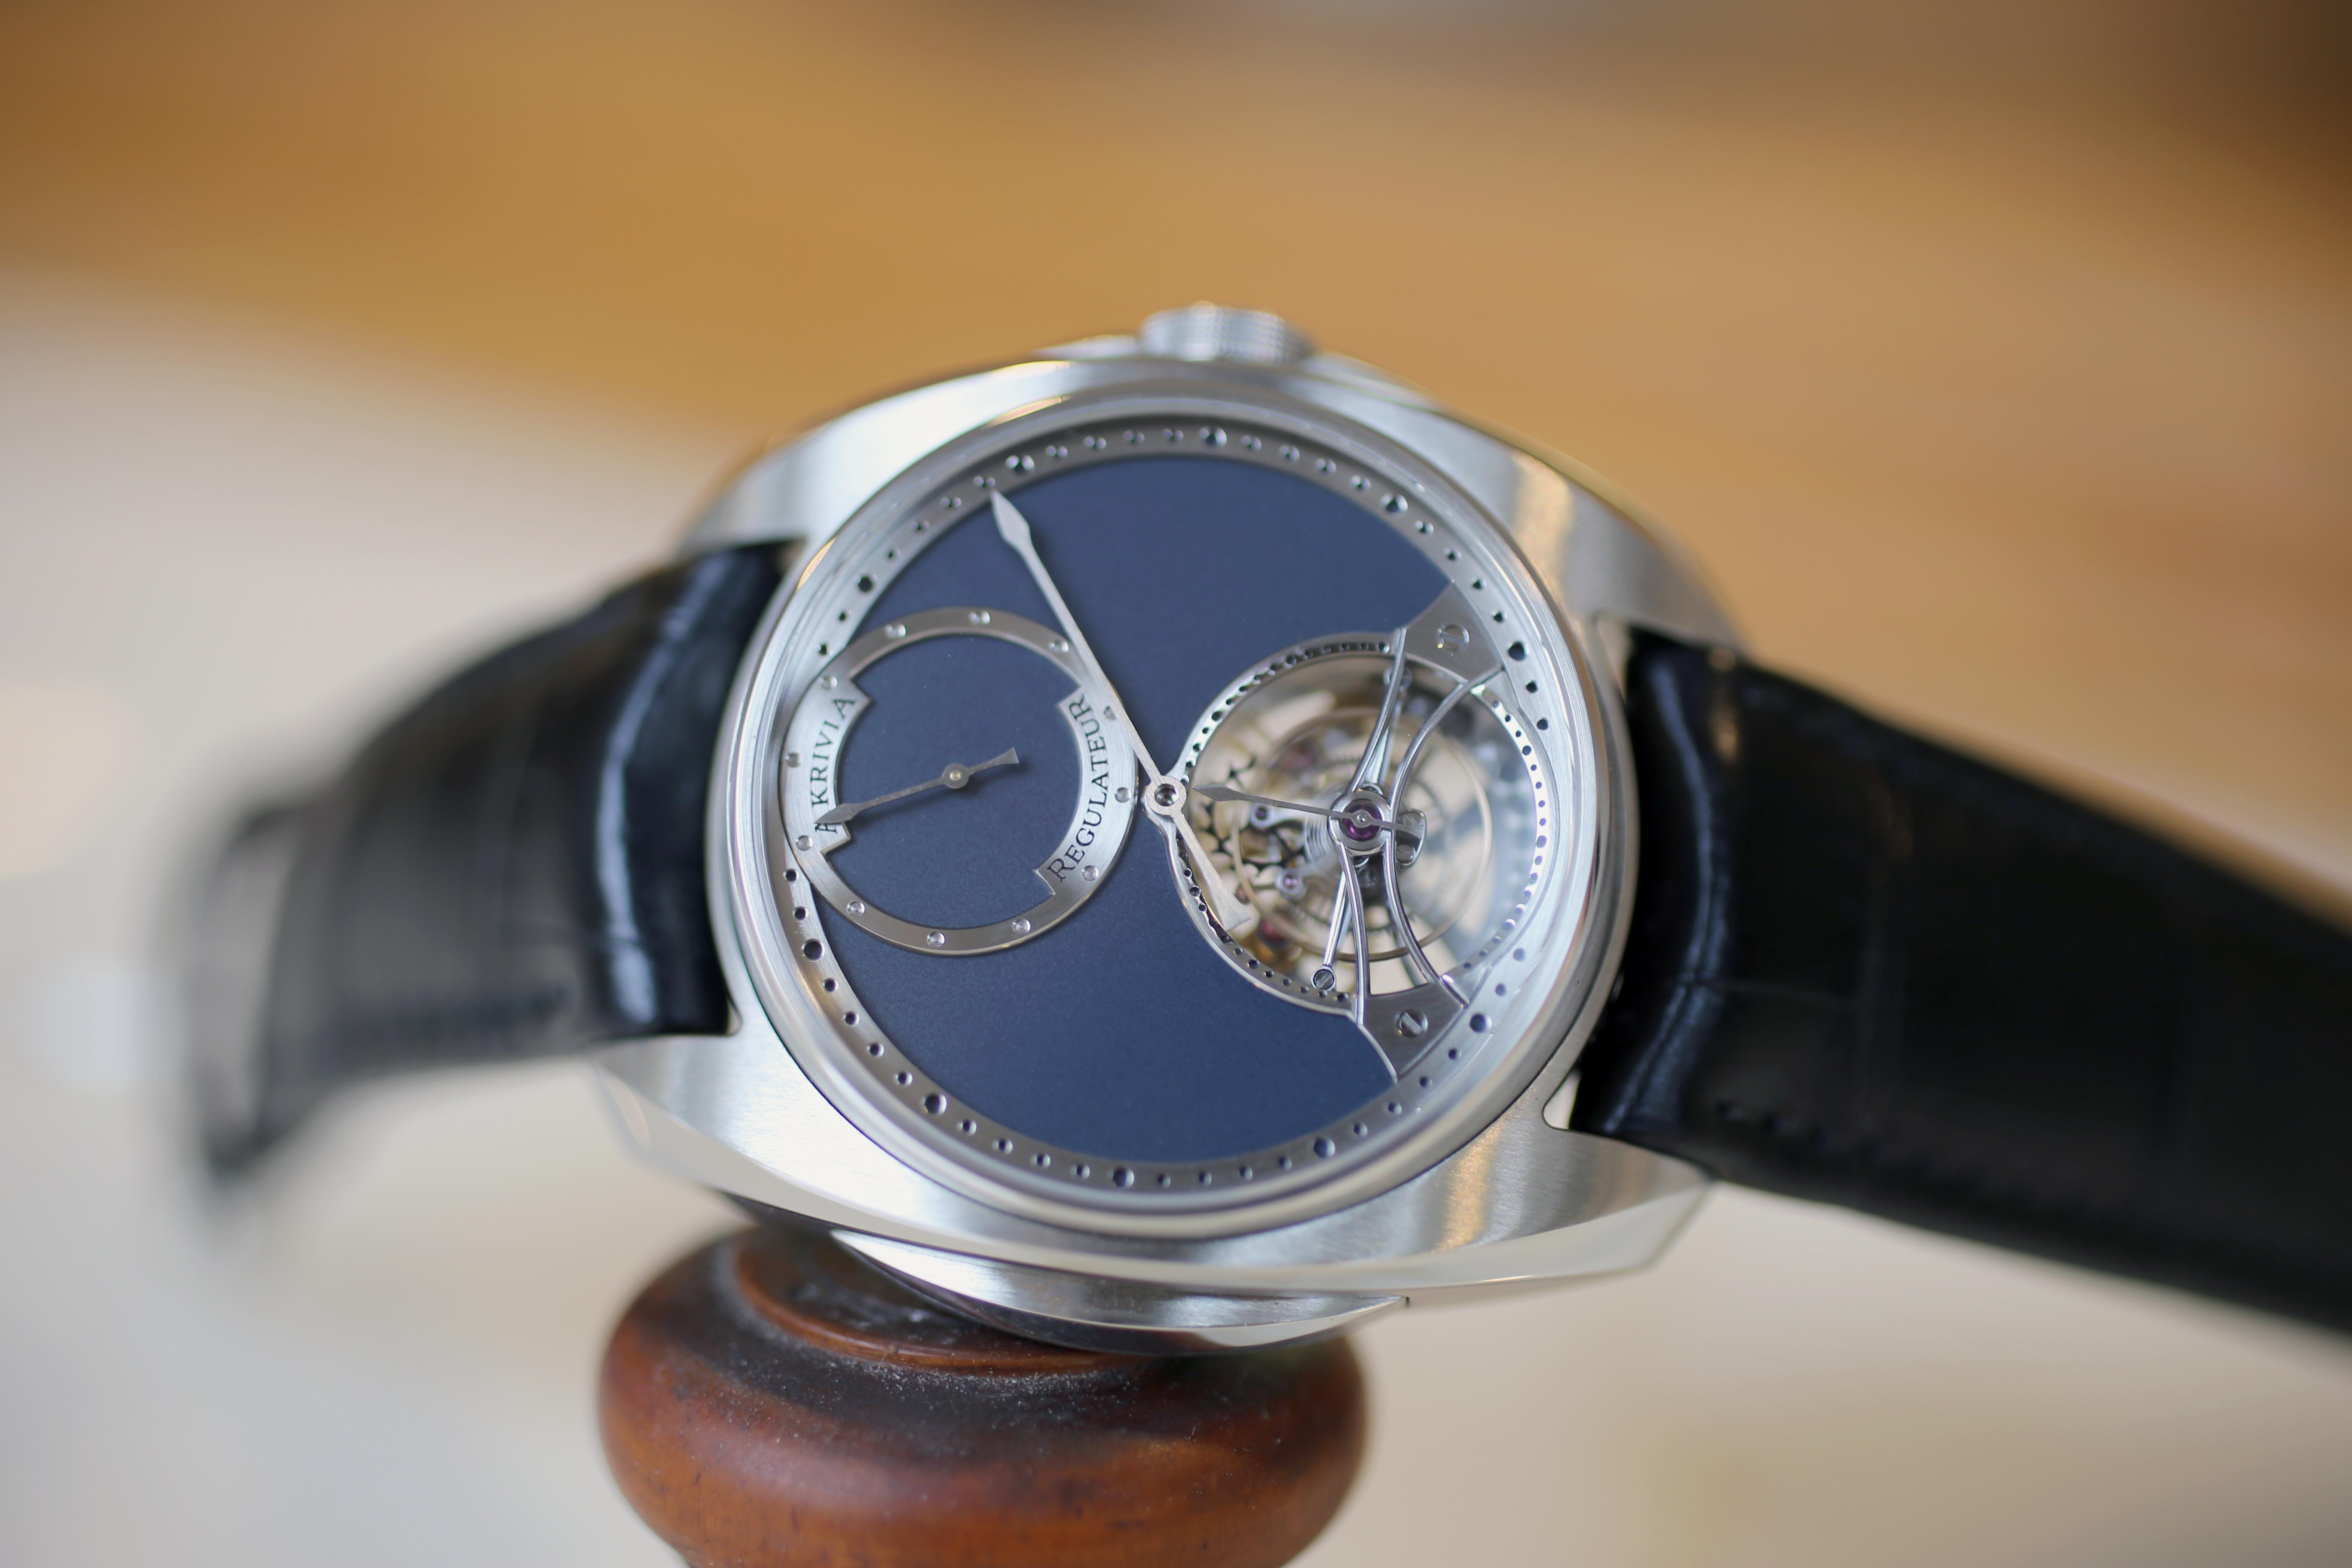 The AkriviA Tourbillon Regulator. Remember Rexhep Rexhepi, Geneva's Next Big Thing? He's Still Busy Making Watches, And His Business Is Growing Remember Rexhep Rexhepi, Geneva's Next Big Thing? He's Still Busy Making Watches, And His Business Is Growing IMG 2521